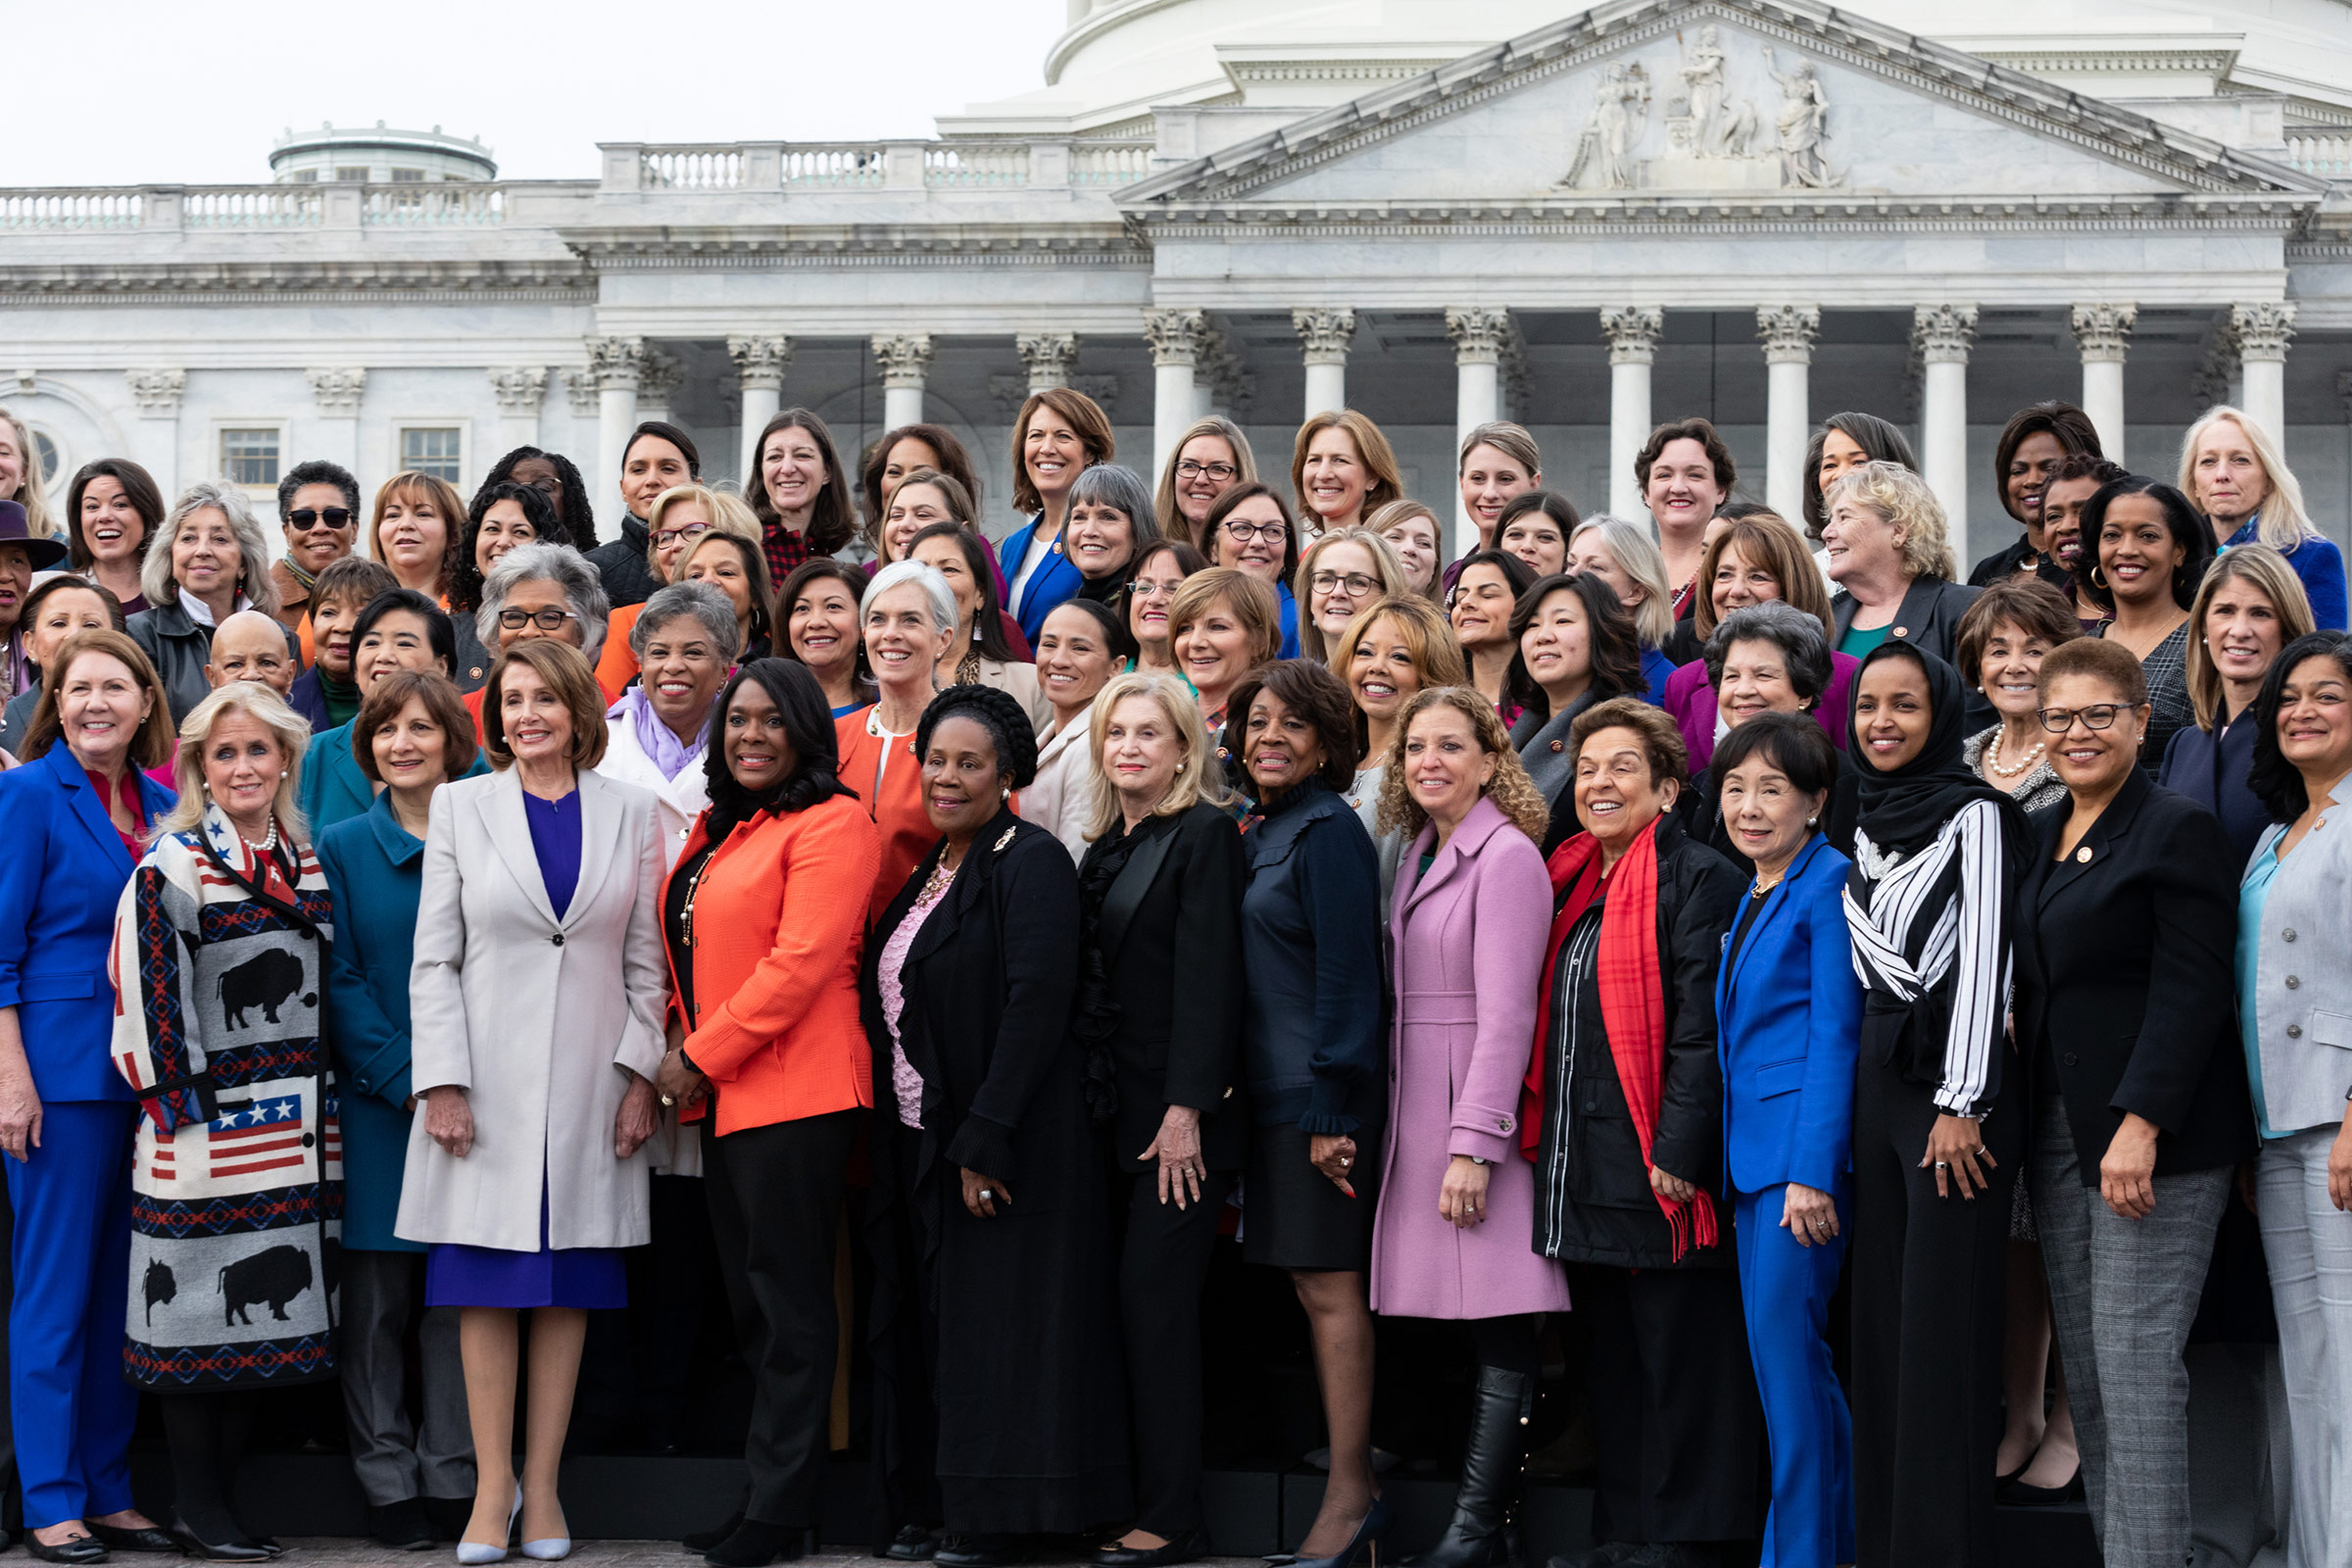 Speaker Nancy Pelosi (D-CA), (4th from left, front row), poses for a group photo with her fellow House Democratic women in front of the U.S. Capitol in Washington, DC, on  January 4. The 116th Congress currently has the largest number of female members.